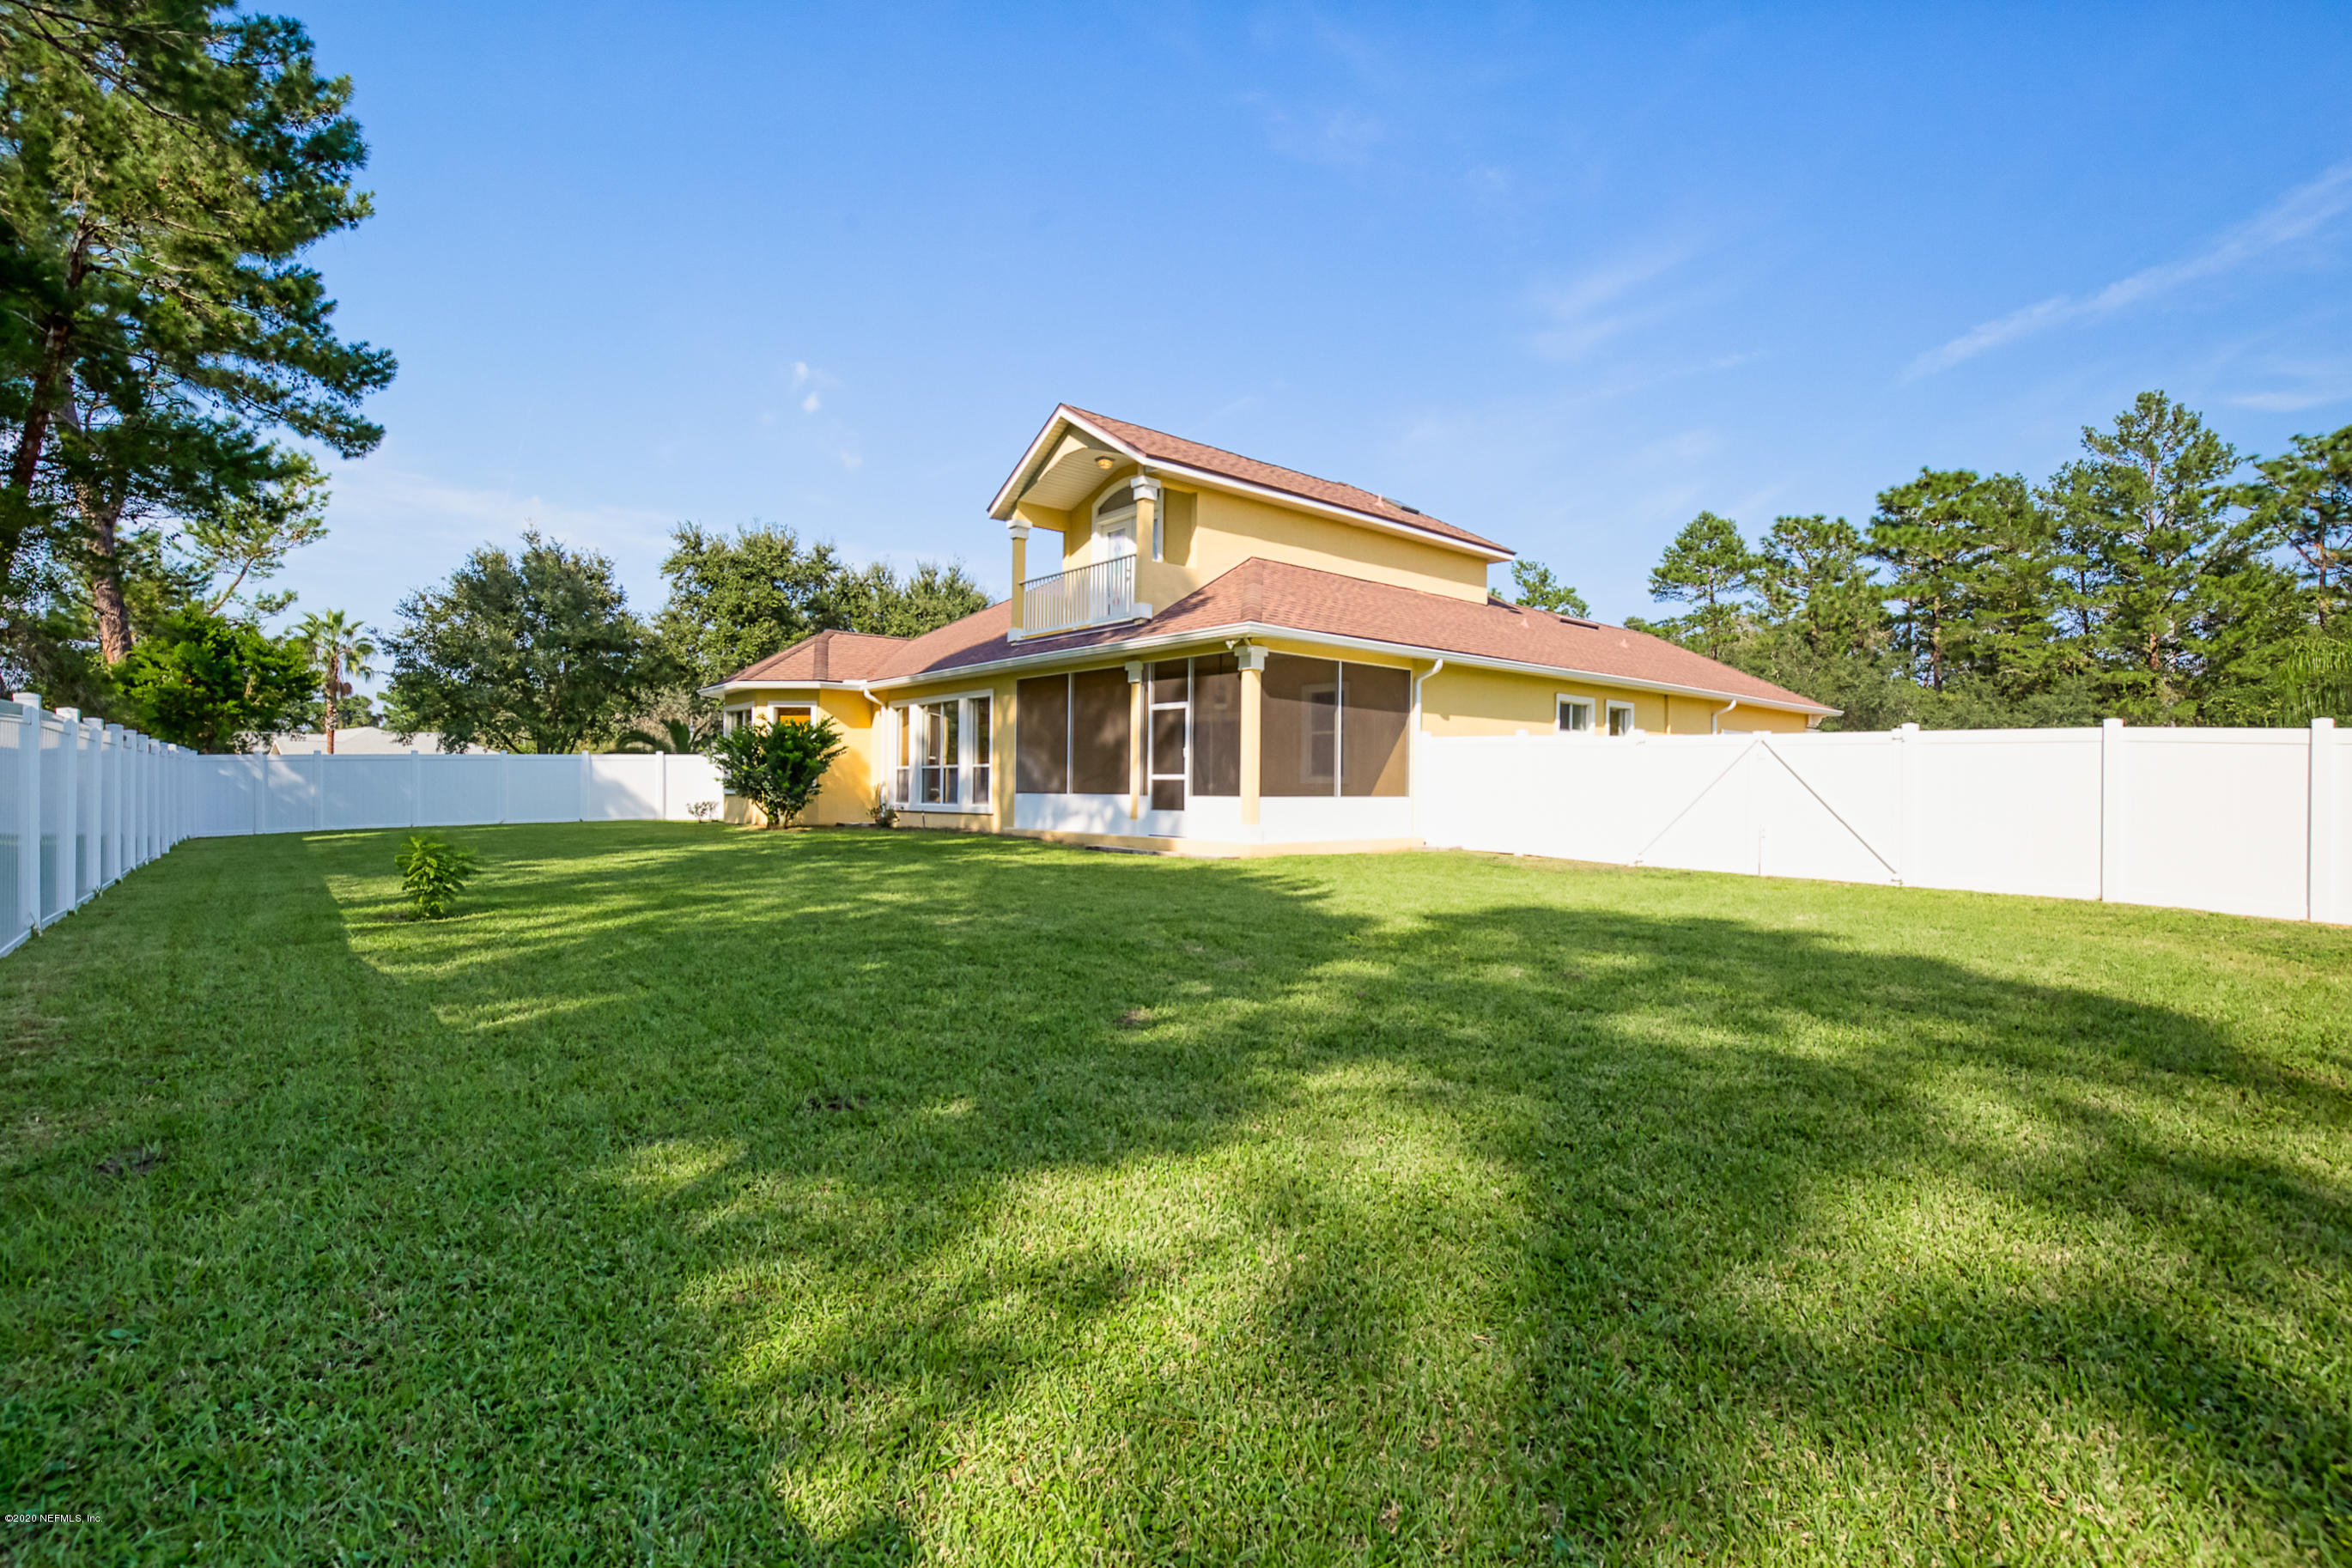 369 CORTEZ, ST AUGUSTINE, FLORIDA 32086, 4 Bedrooms Bedrooms, ,3 BathroomsBathrooms,Residential,For sale,CORTEZ,1058322